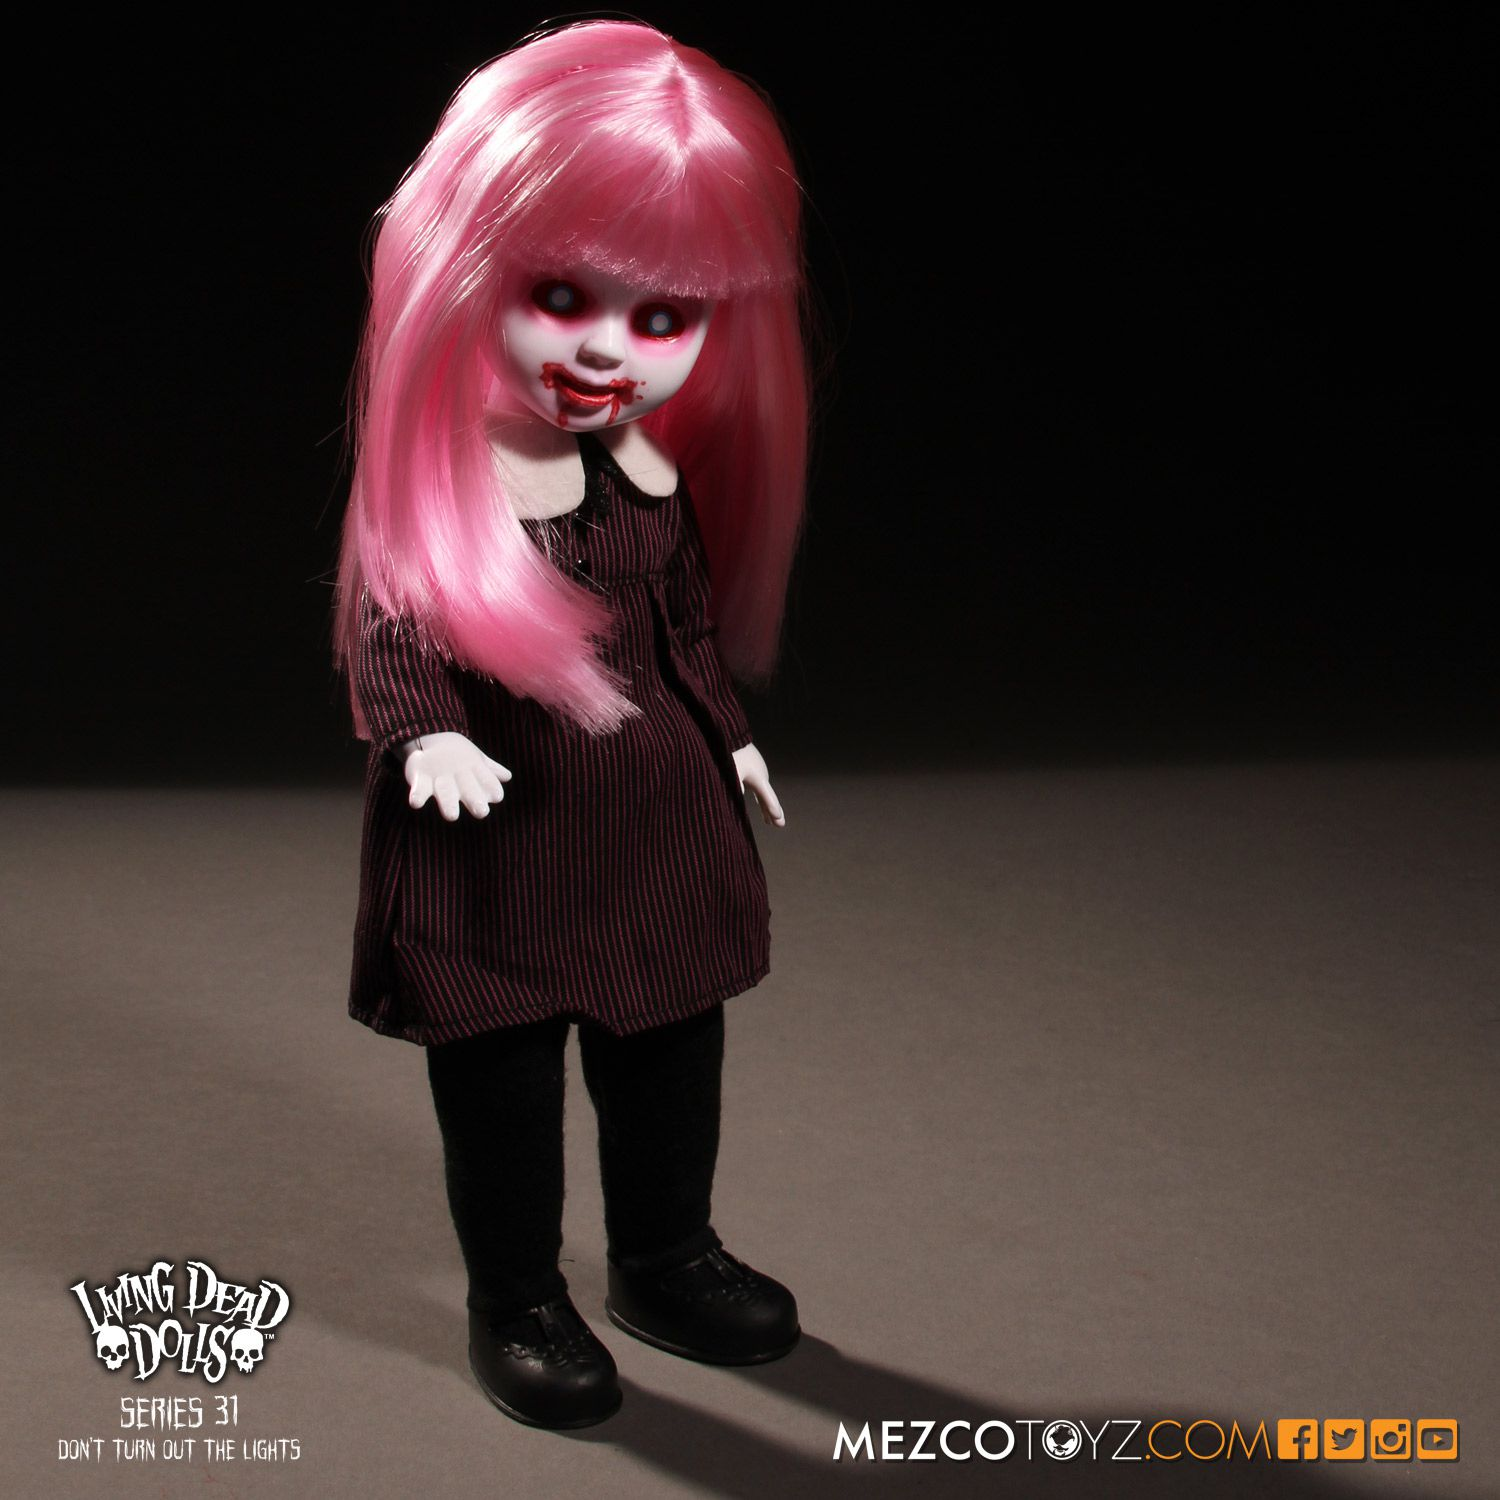 Living Dead Dolls Series 031: Don't Turn Out The Lights- Bea Neath